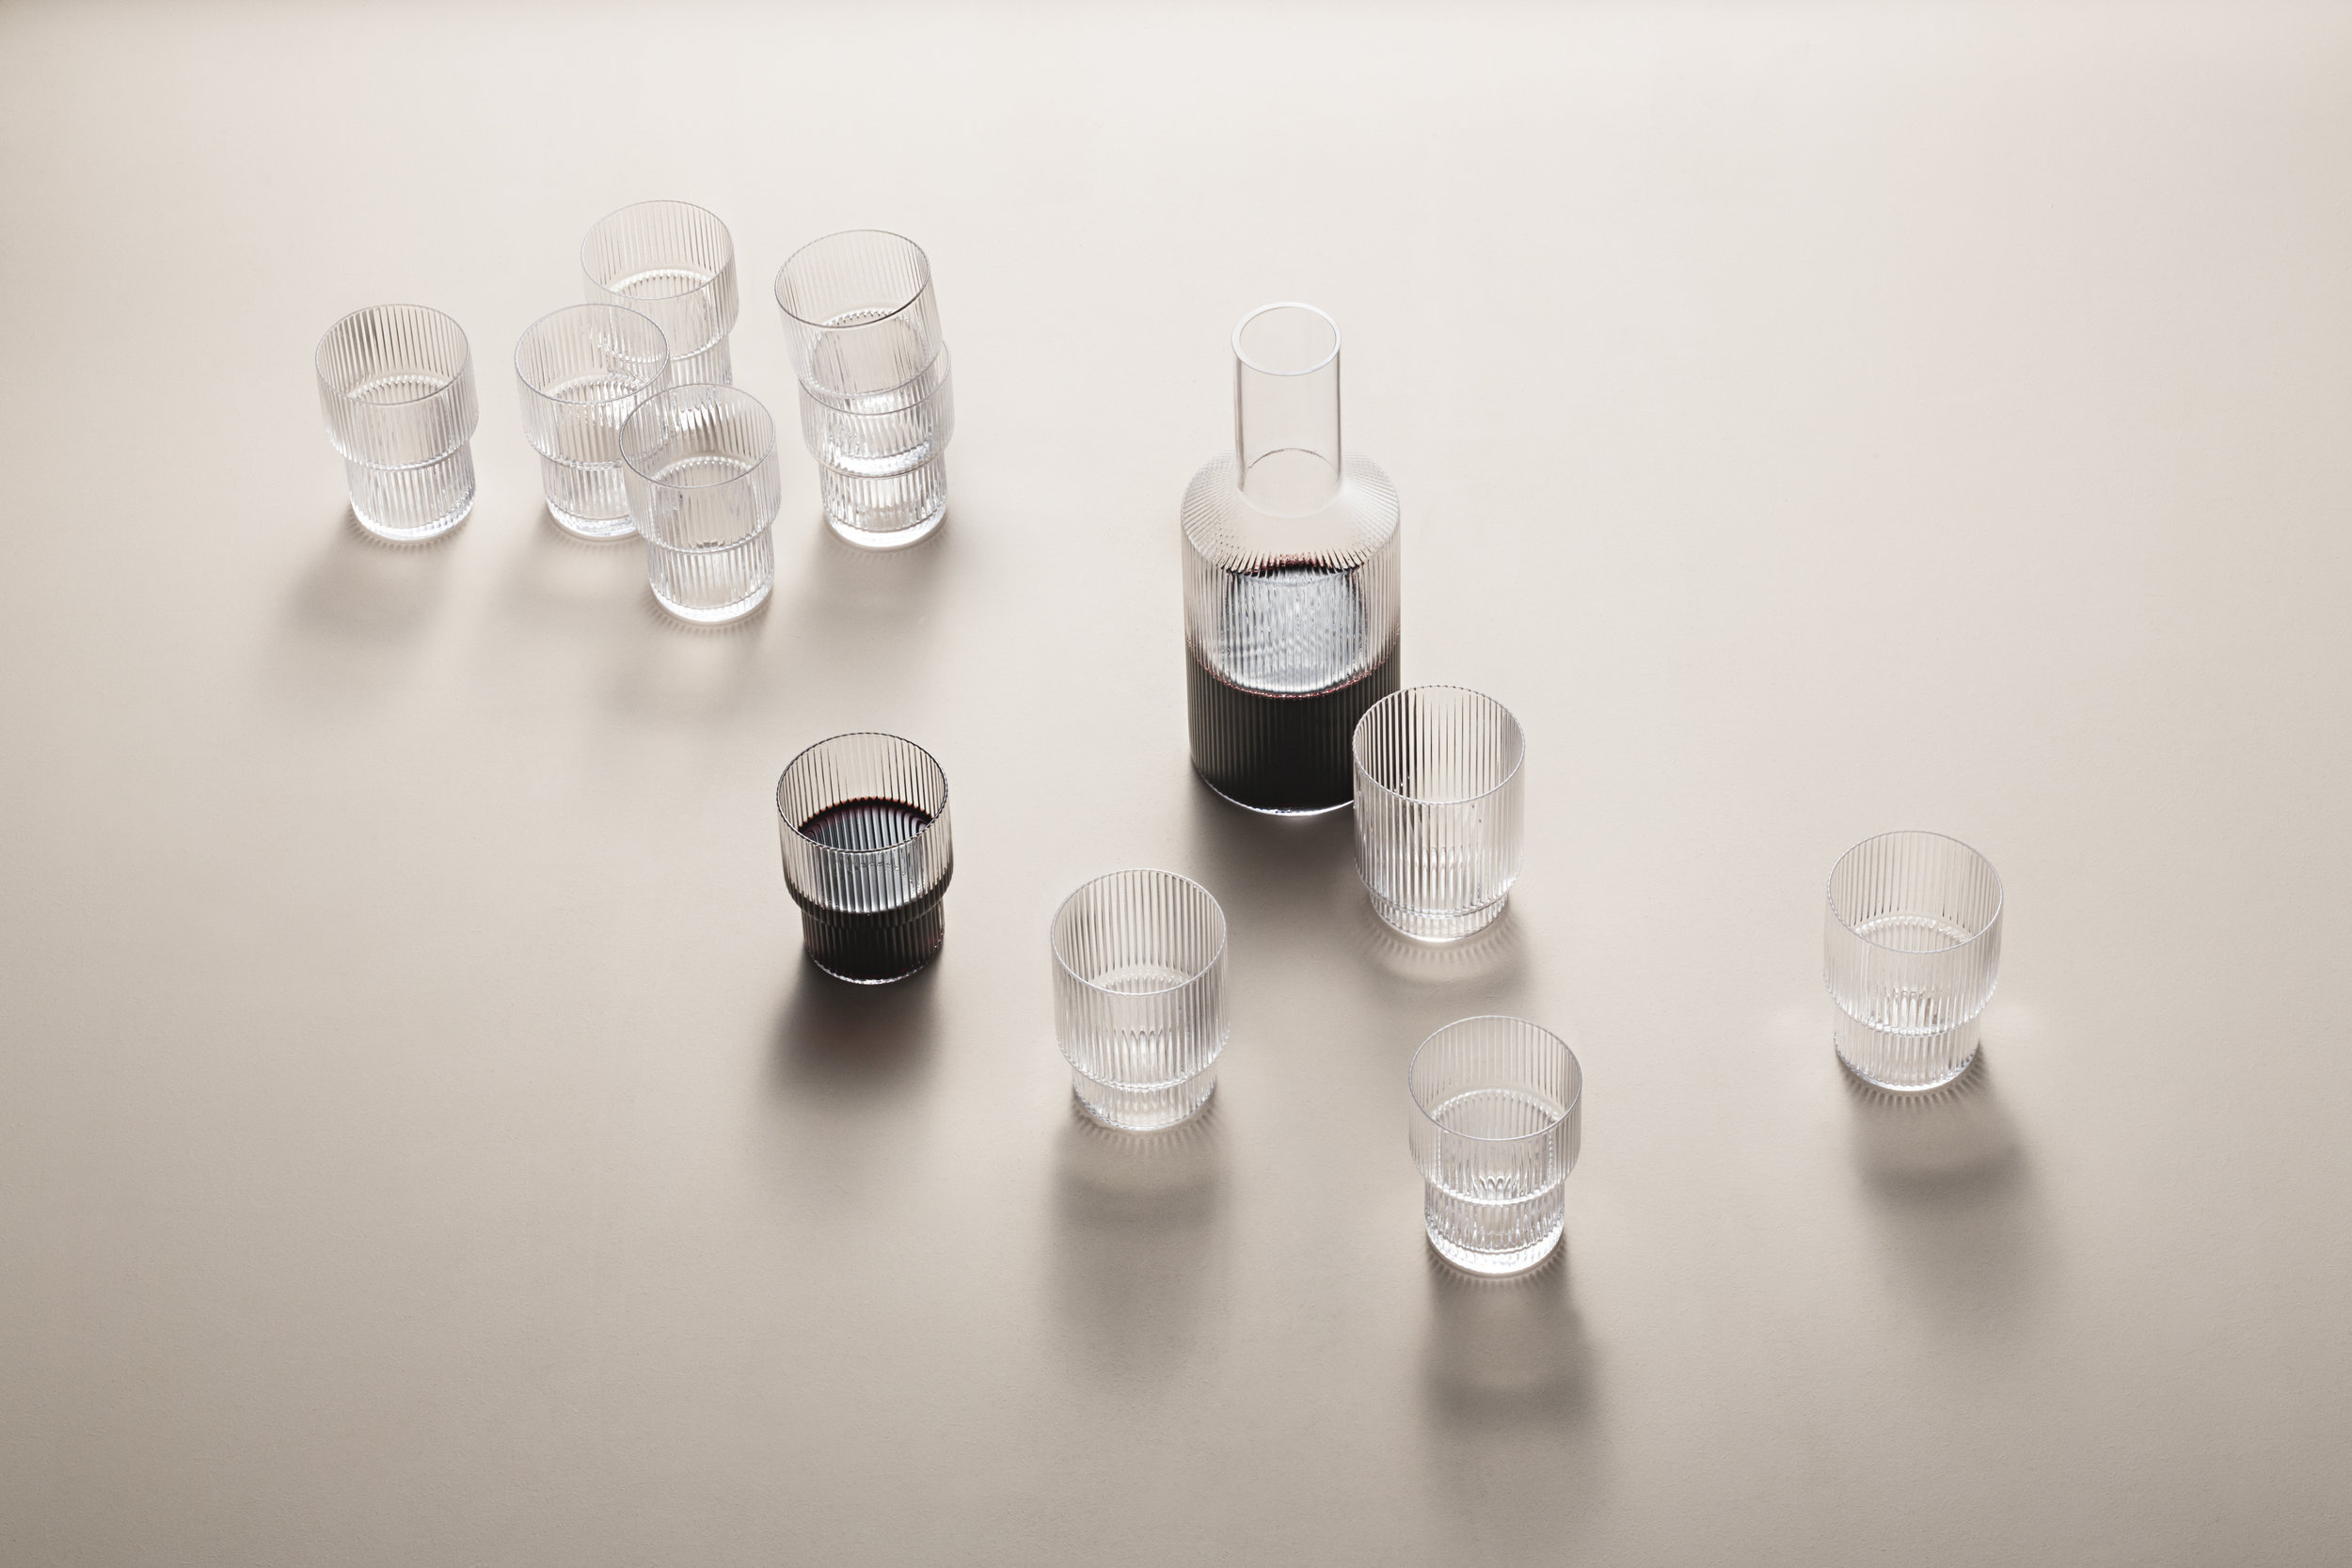 Ripple Glasses and Carafe. Mouth-blown into the mould. Set of 4 glasses with a stackable design.